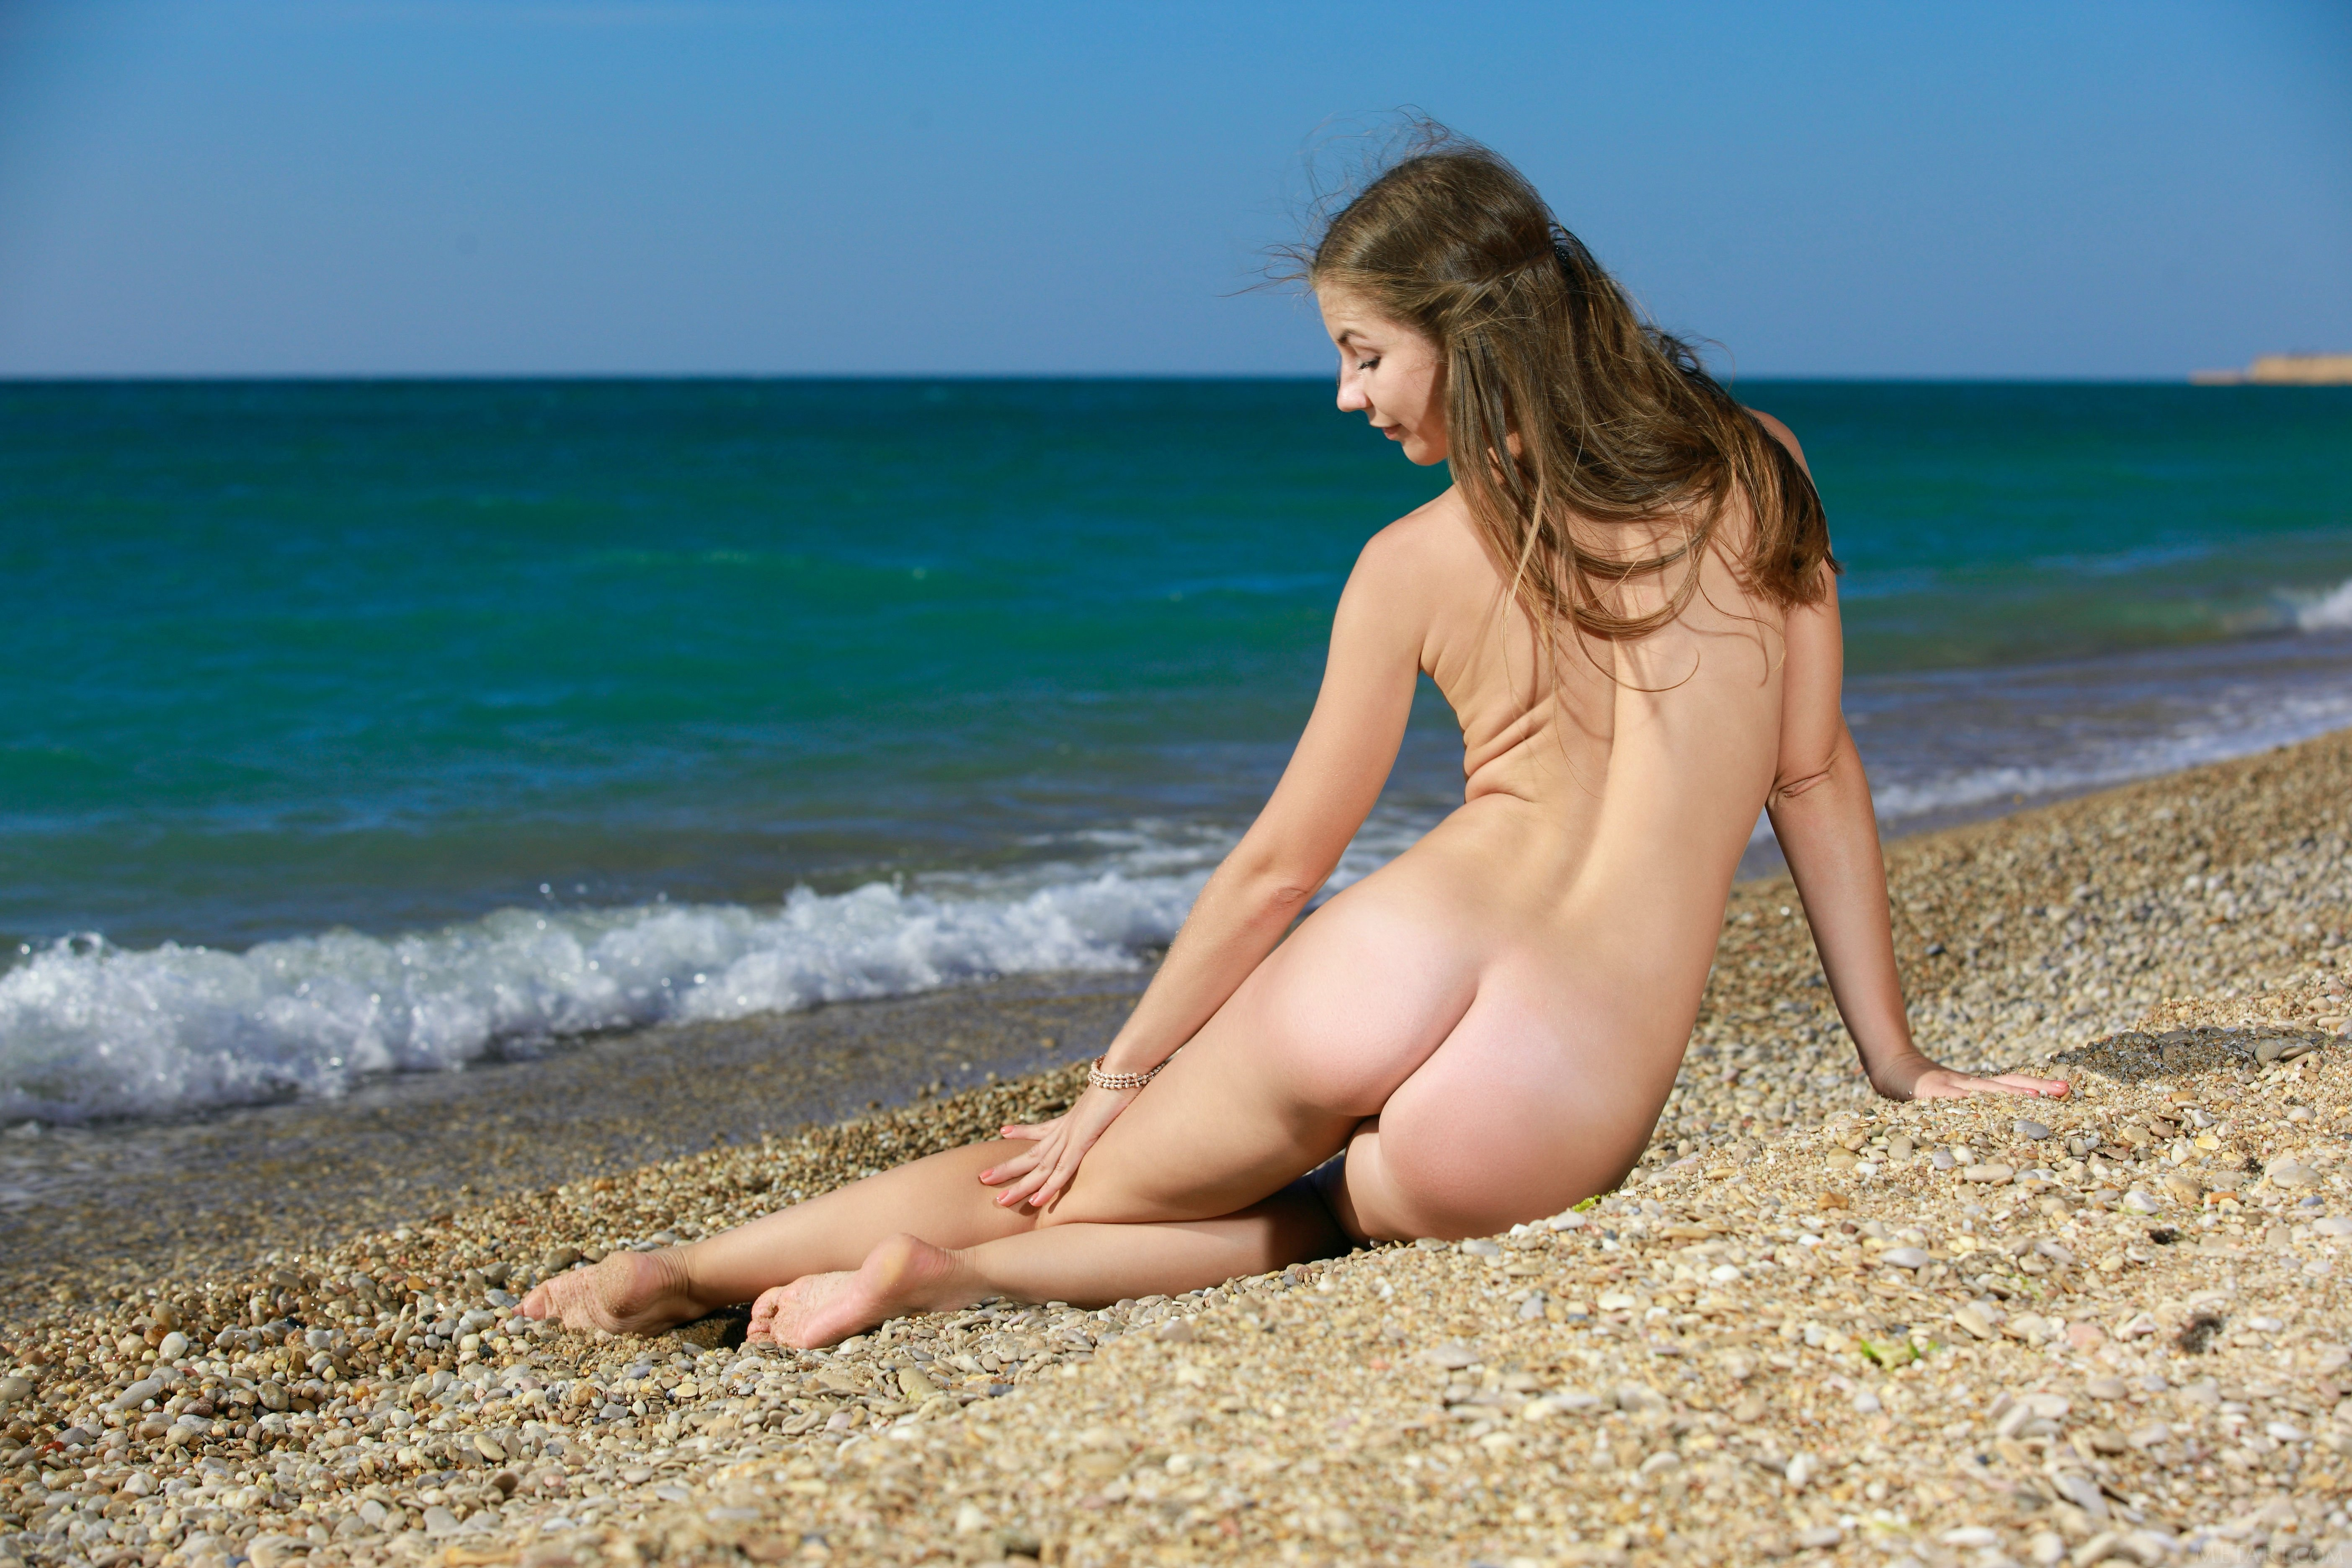 Sex videos sexy girl at nude beach images vergine pussy